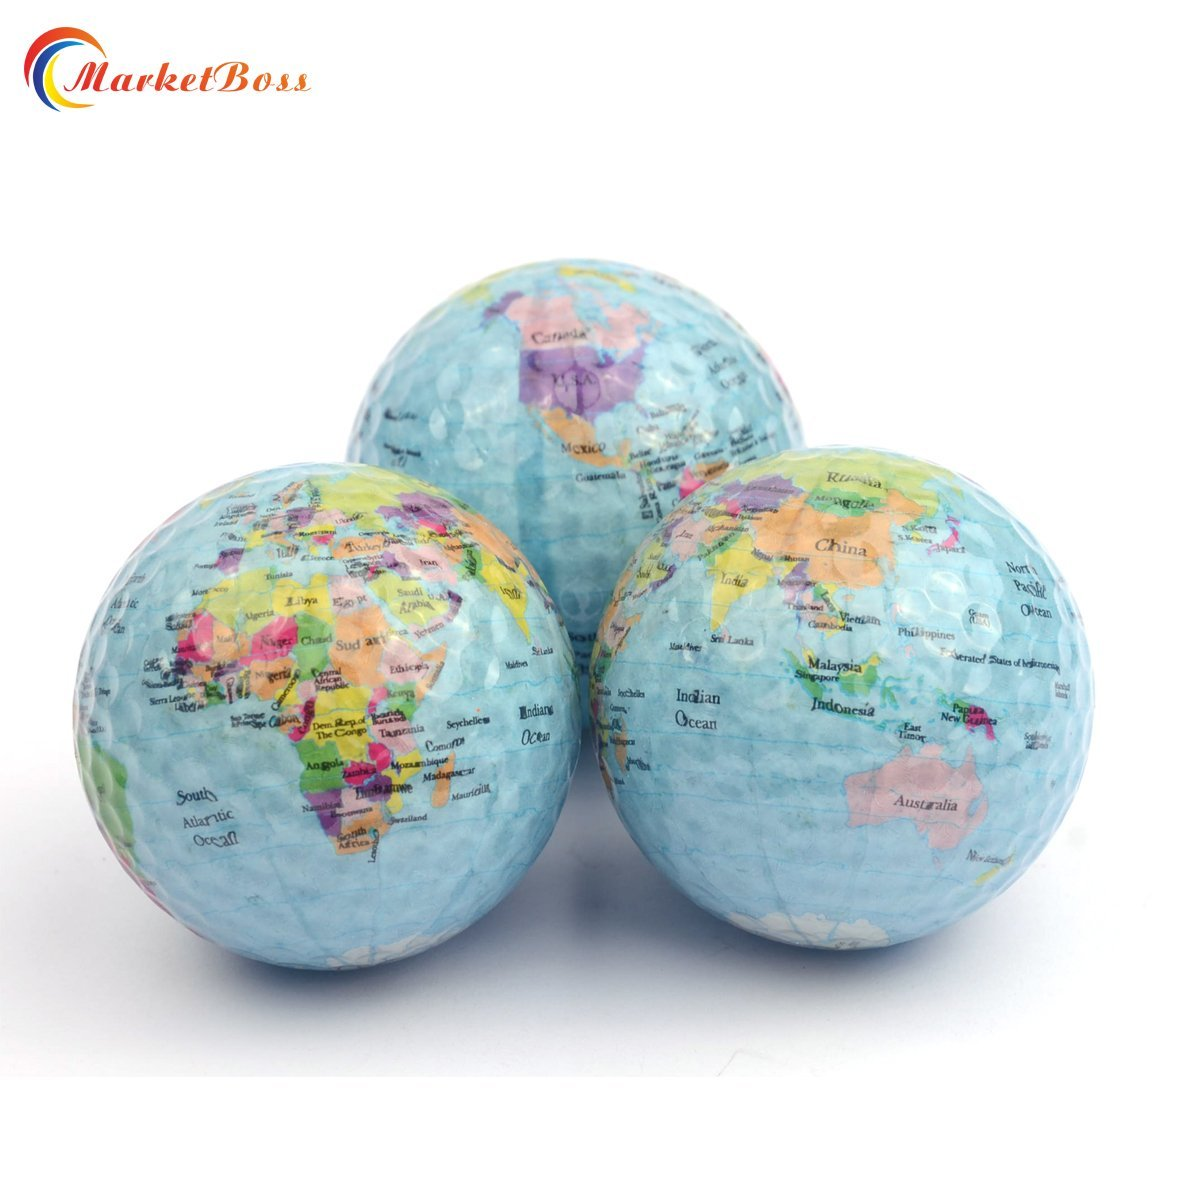 MarketBoss 3pcs World Earth Globe Golf Ball Gift World Map Occasion Practice Trainning Golf Ball